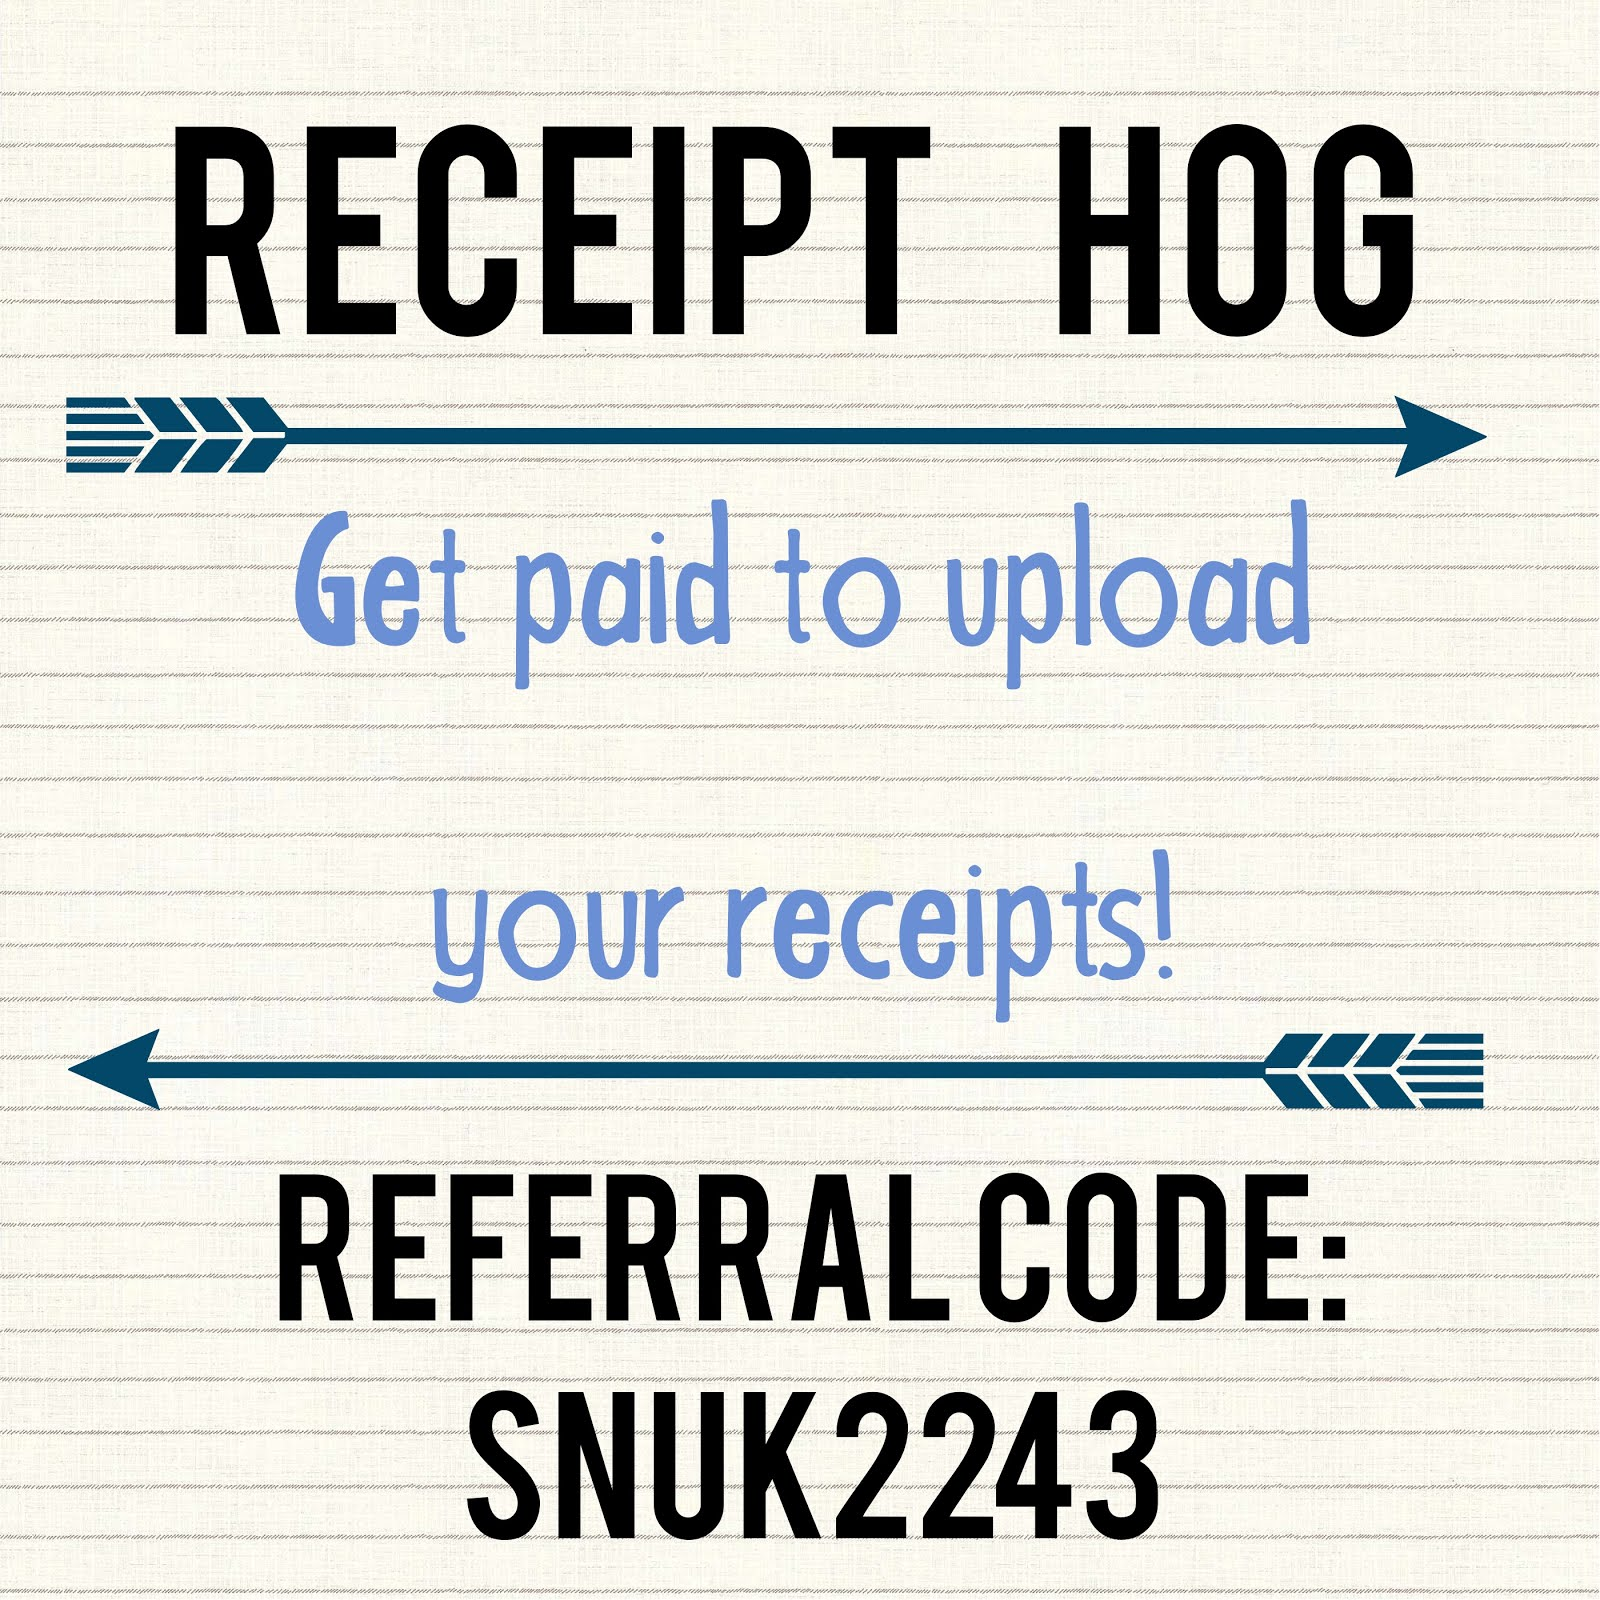 Get paid to upload your receipts!